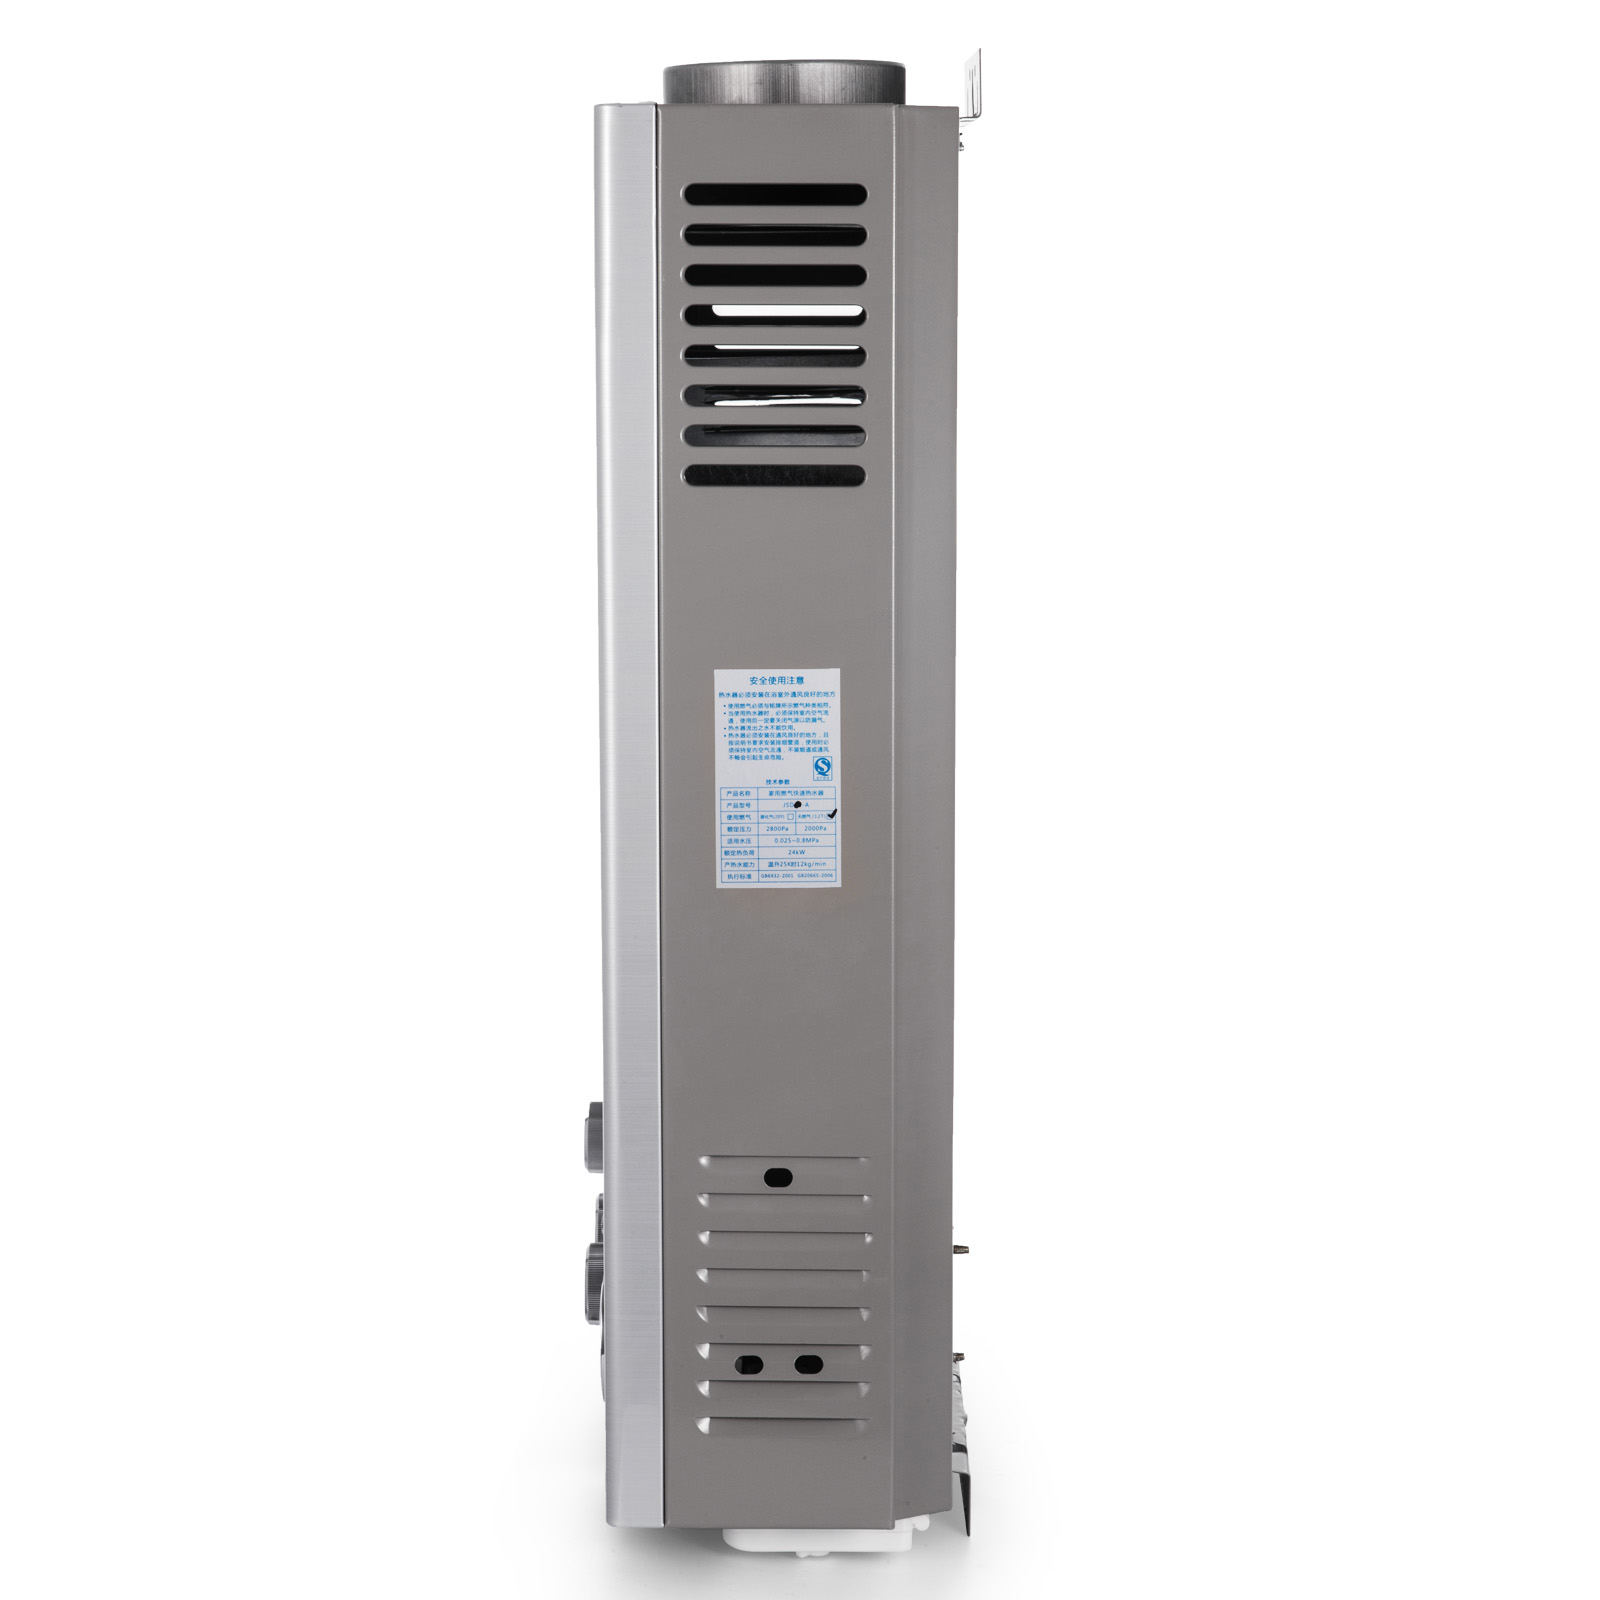 Hot Water Heater 18l 4 8gpm Instant Boiler Tankless 36kw